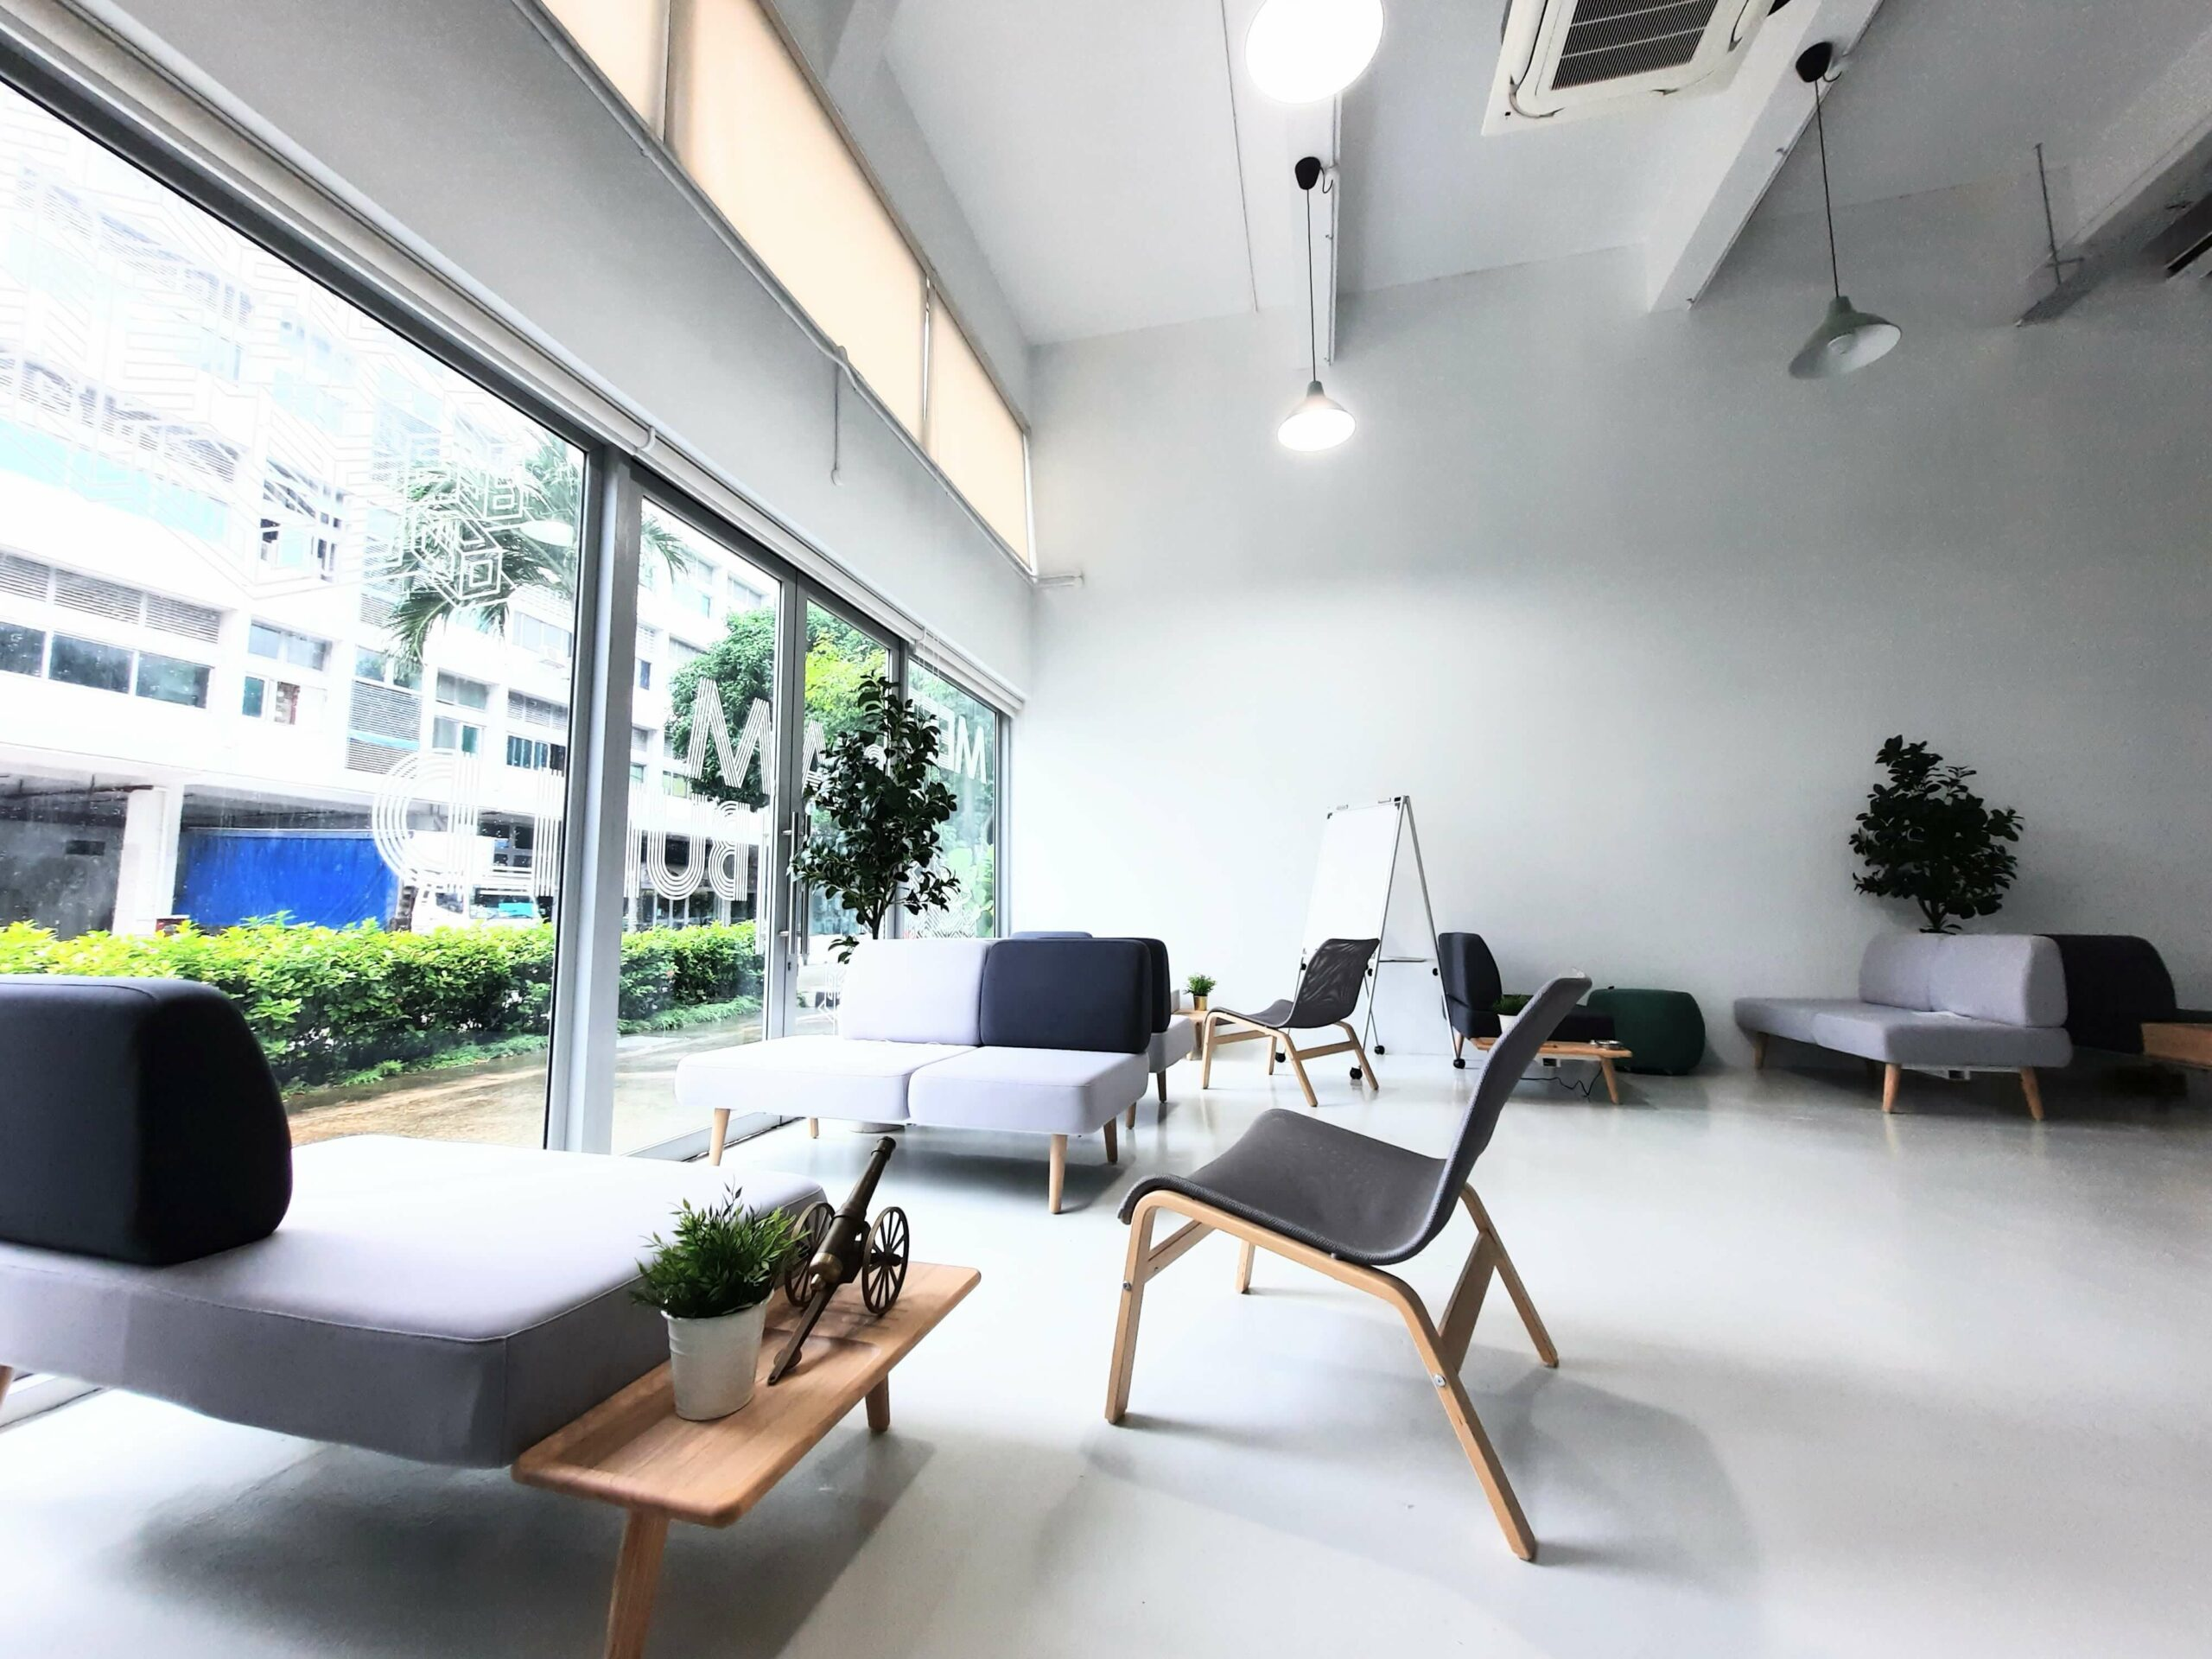 The Common Ground: A Creative Space for Collaboration